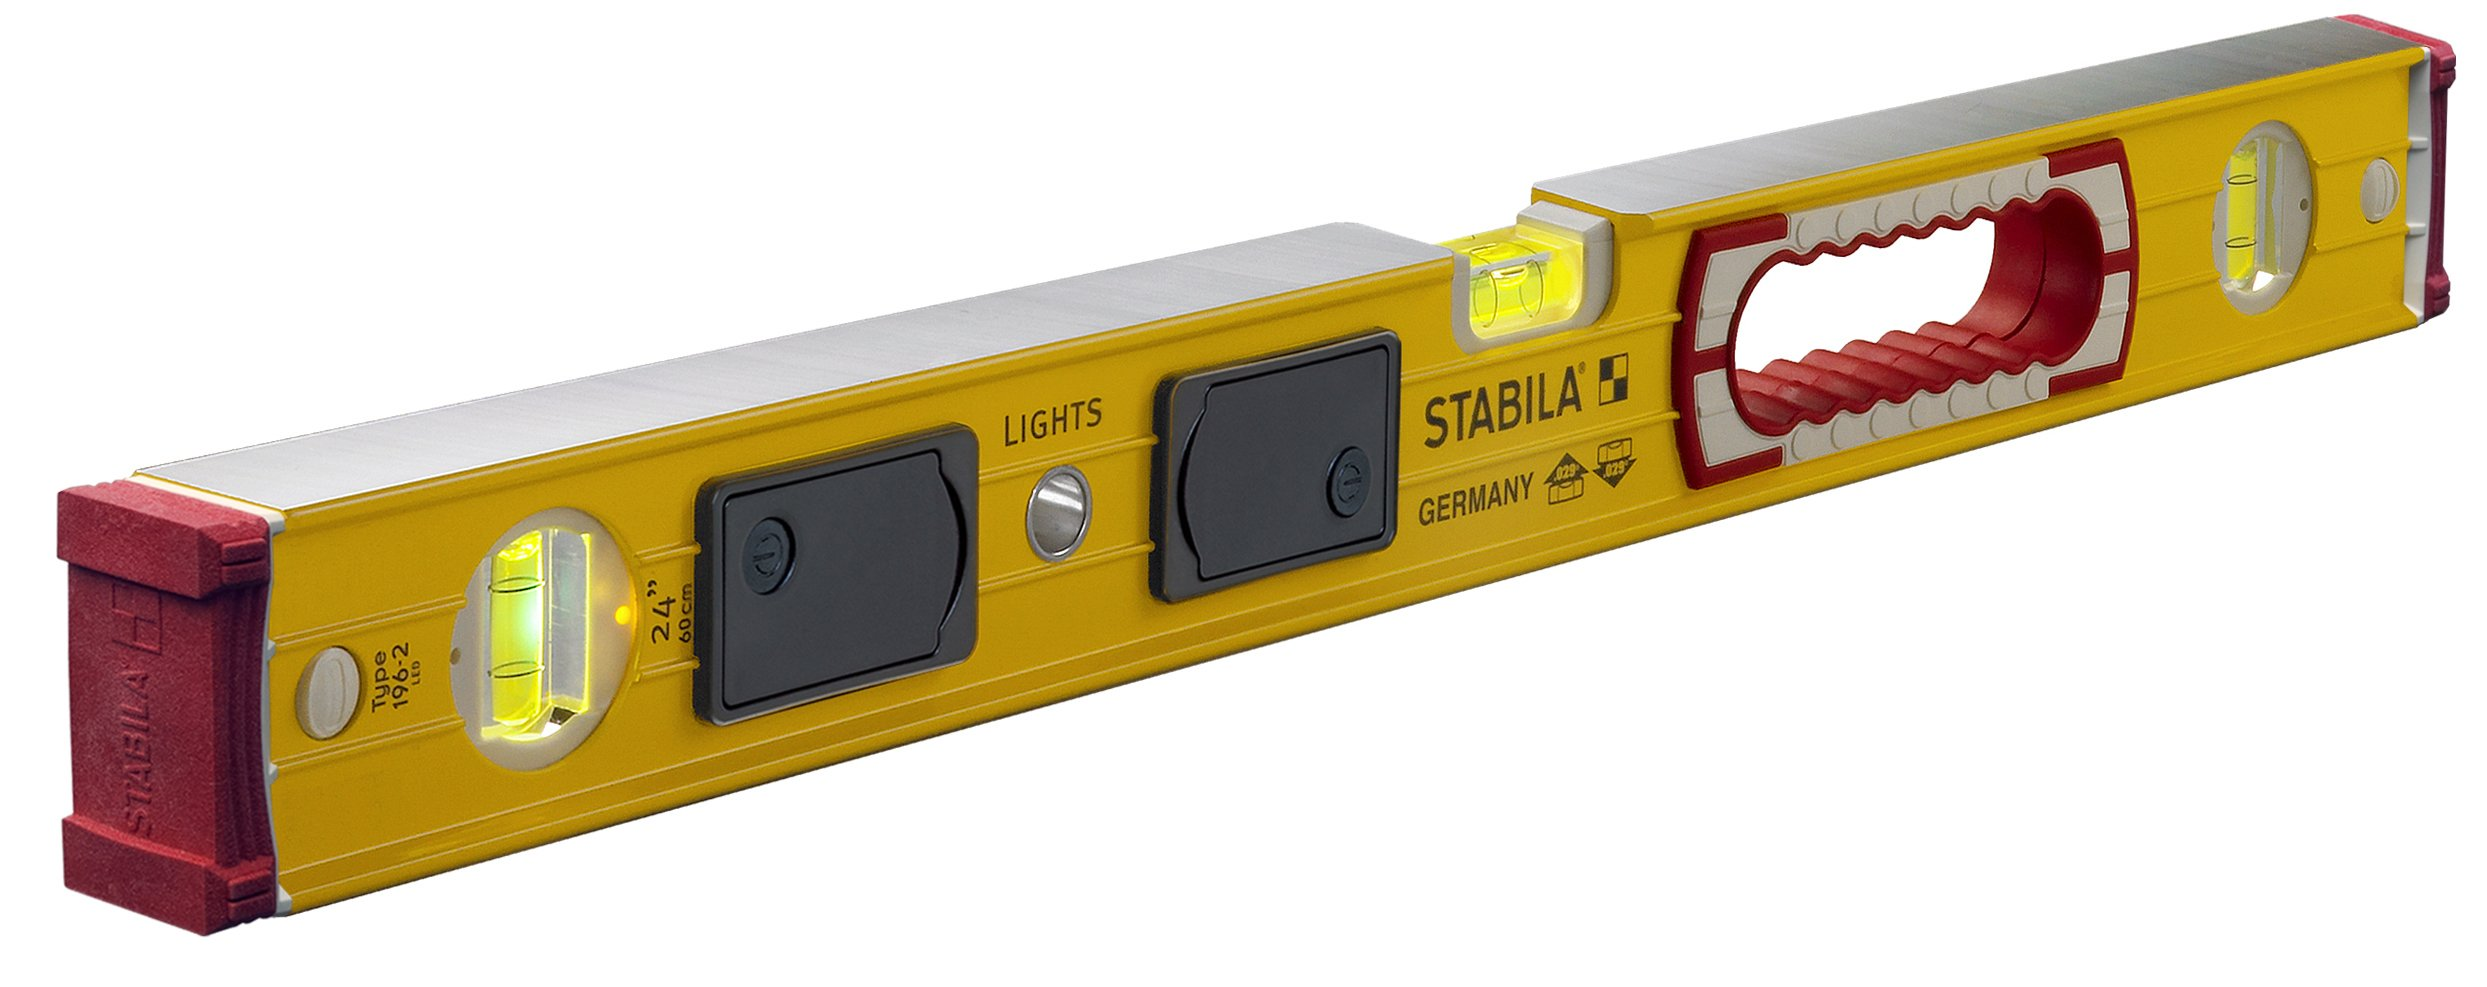 Stabila 39324 196 LED ''The Lights'' Level Kit, a 24'' Level with Two Illuminated Vials and Two Light Packs